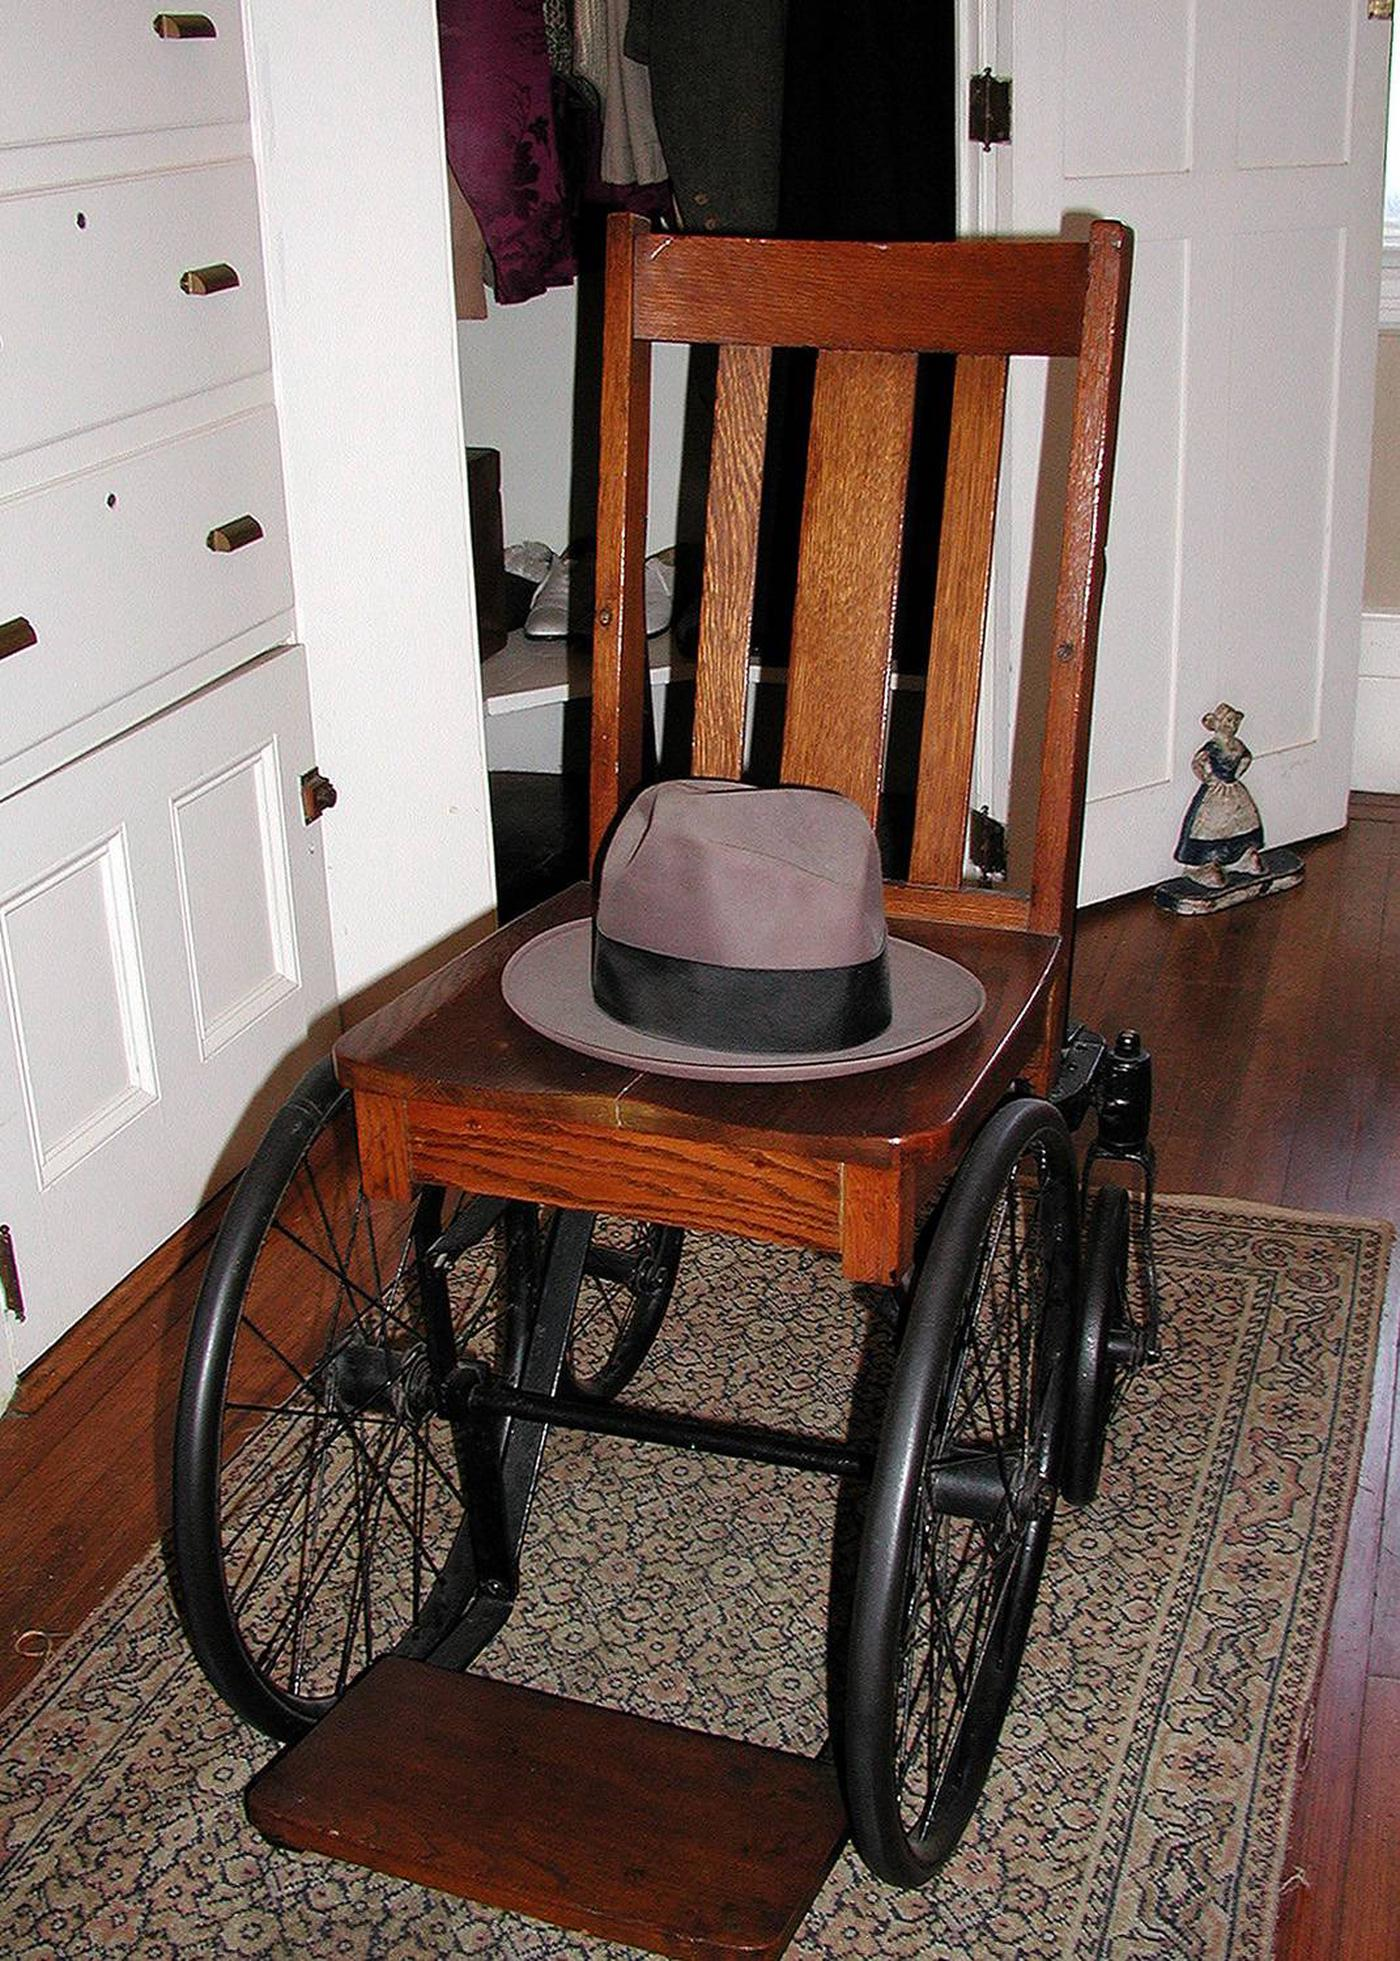 FDR's modified wheelchair